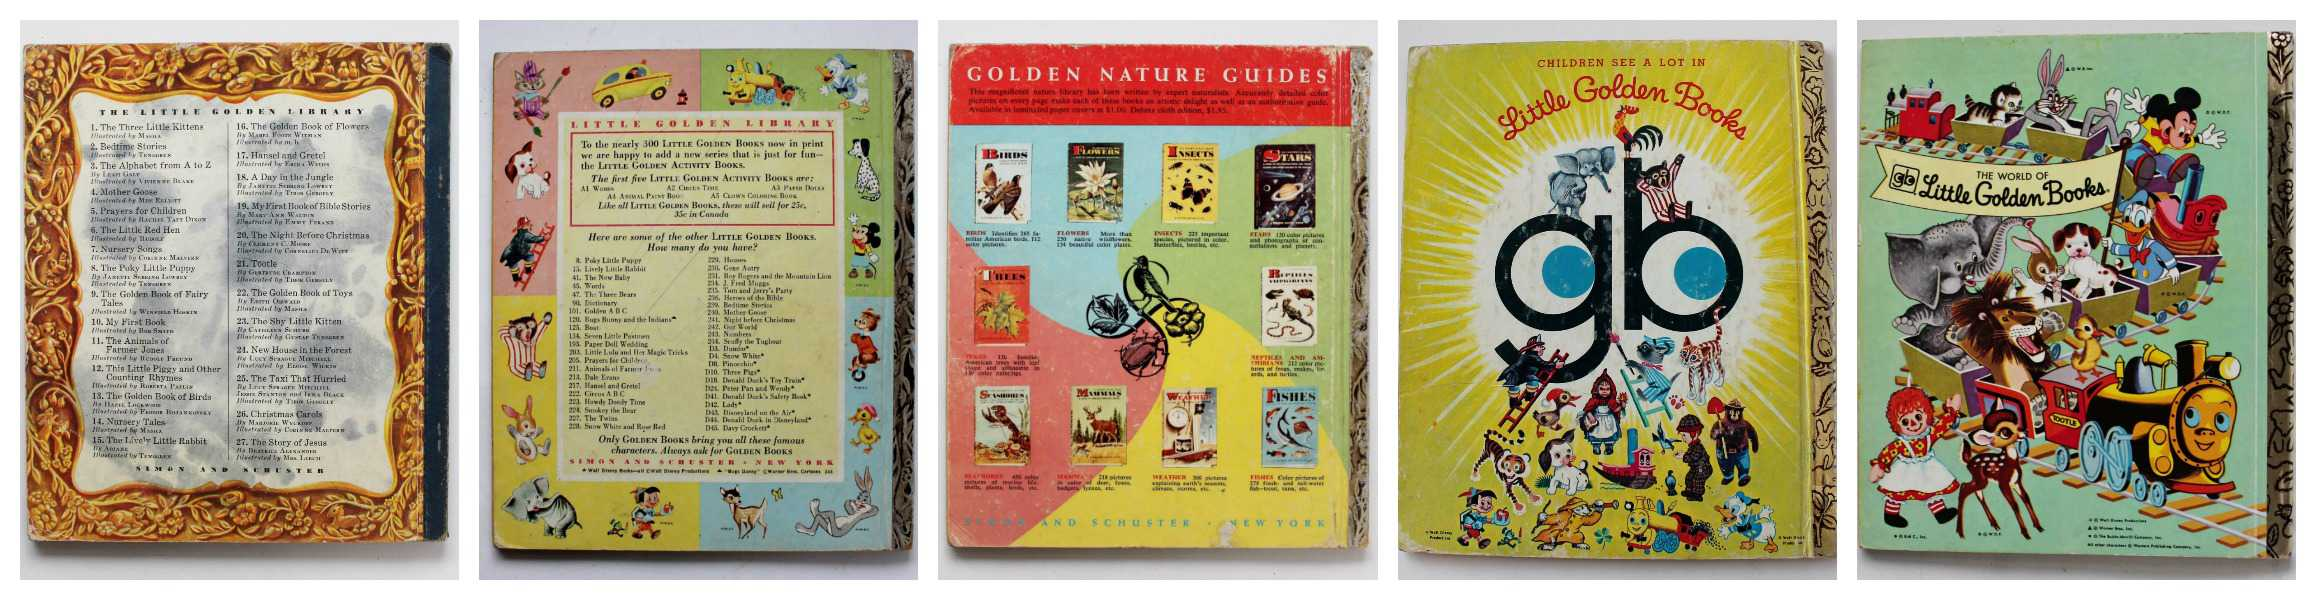 variety of back covers from little golden books